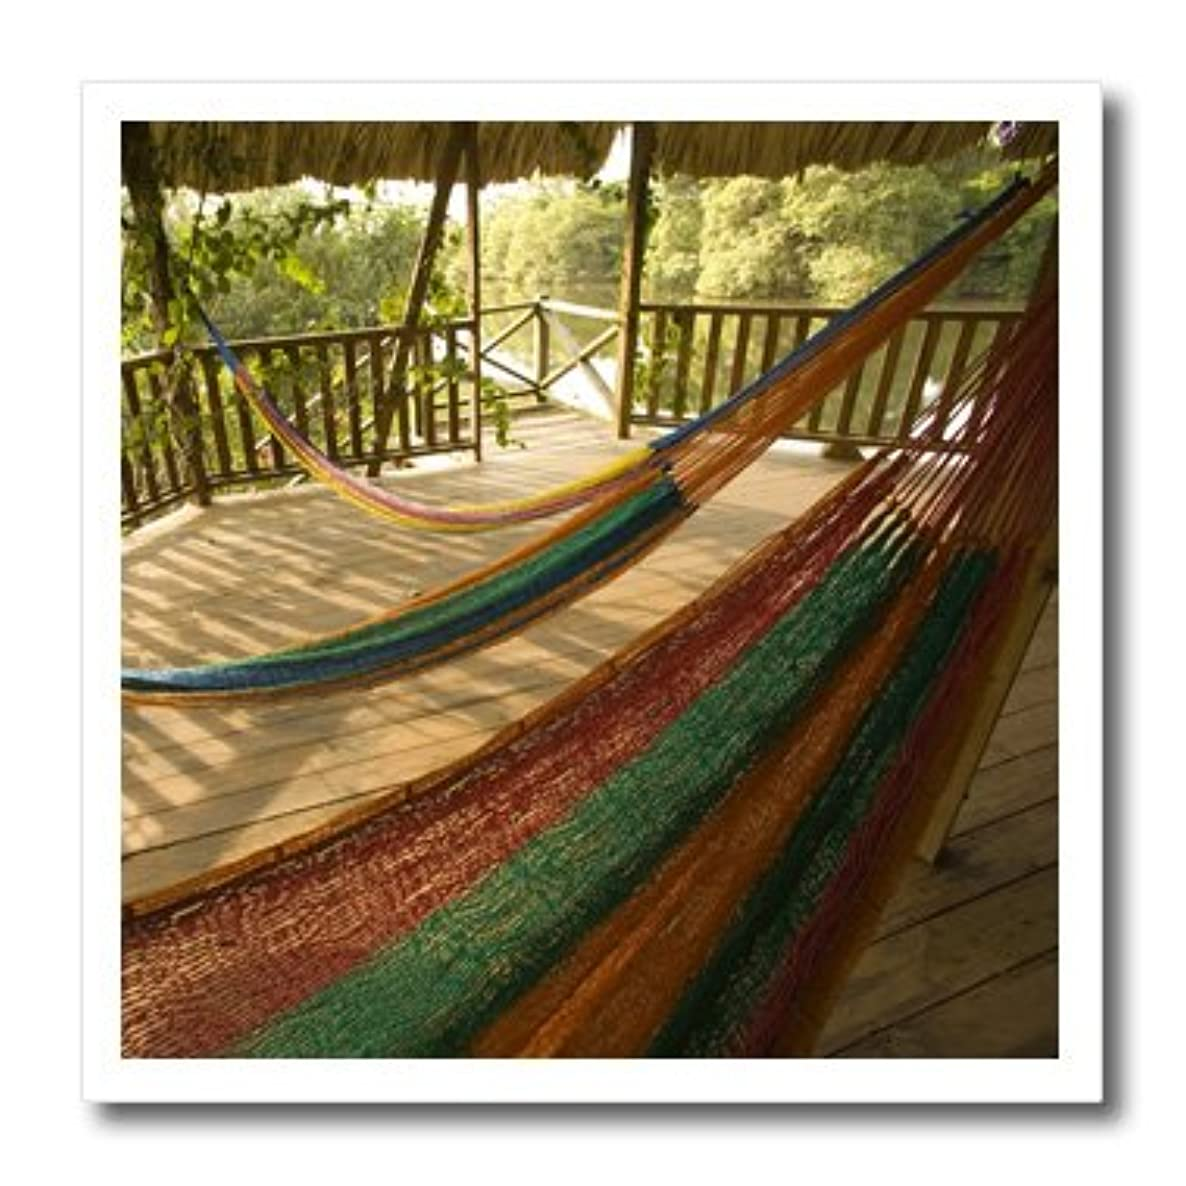 3dRose ht_85551_1 Hammock, Palms, Jaguar Reef Lodge, Belize - John and Lisa Merrill - Iron on Heat Transfer for White Material, 8 by 8-Inch